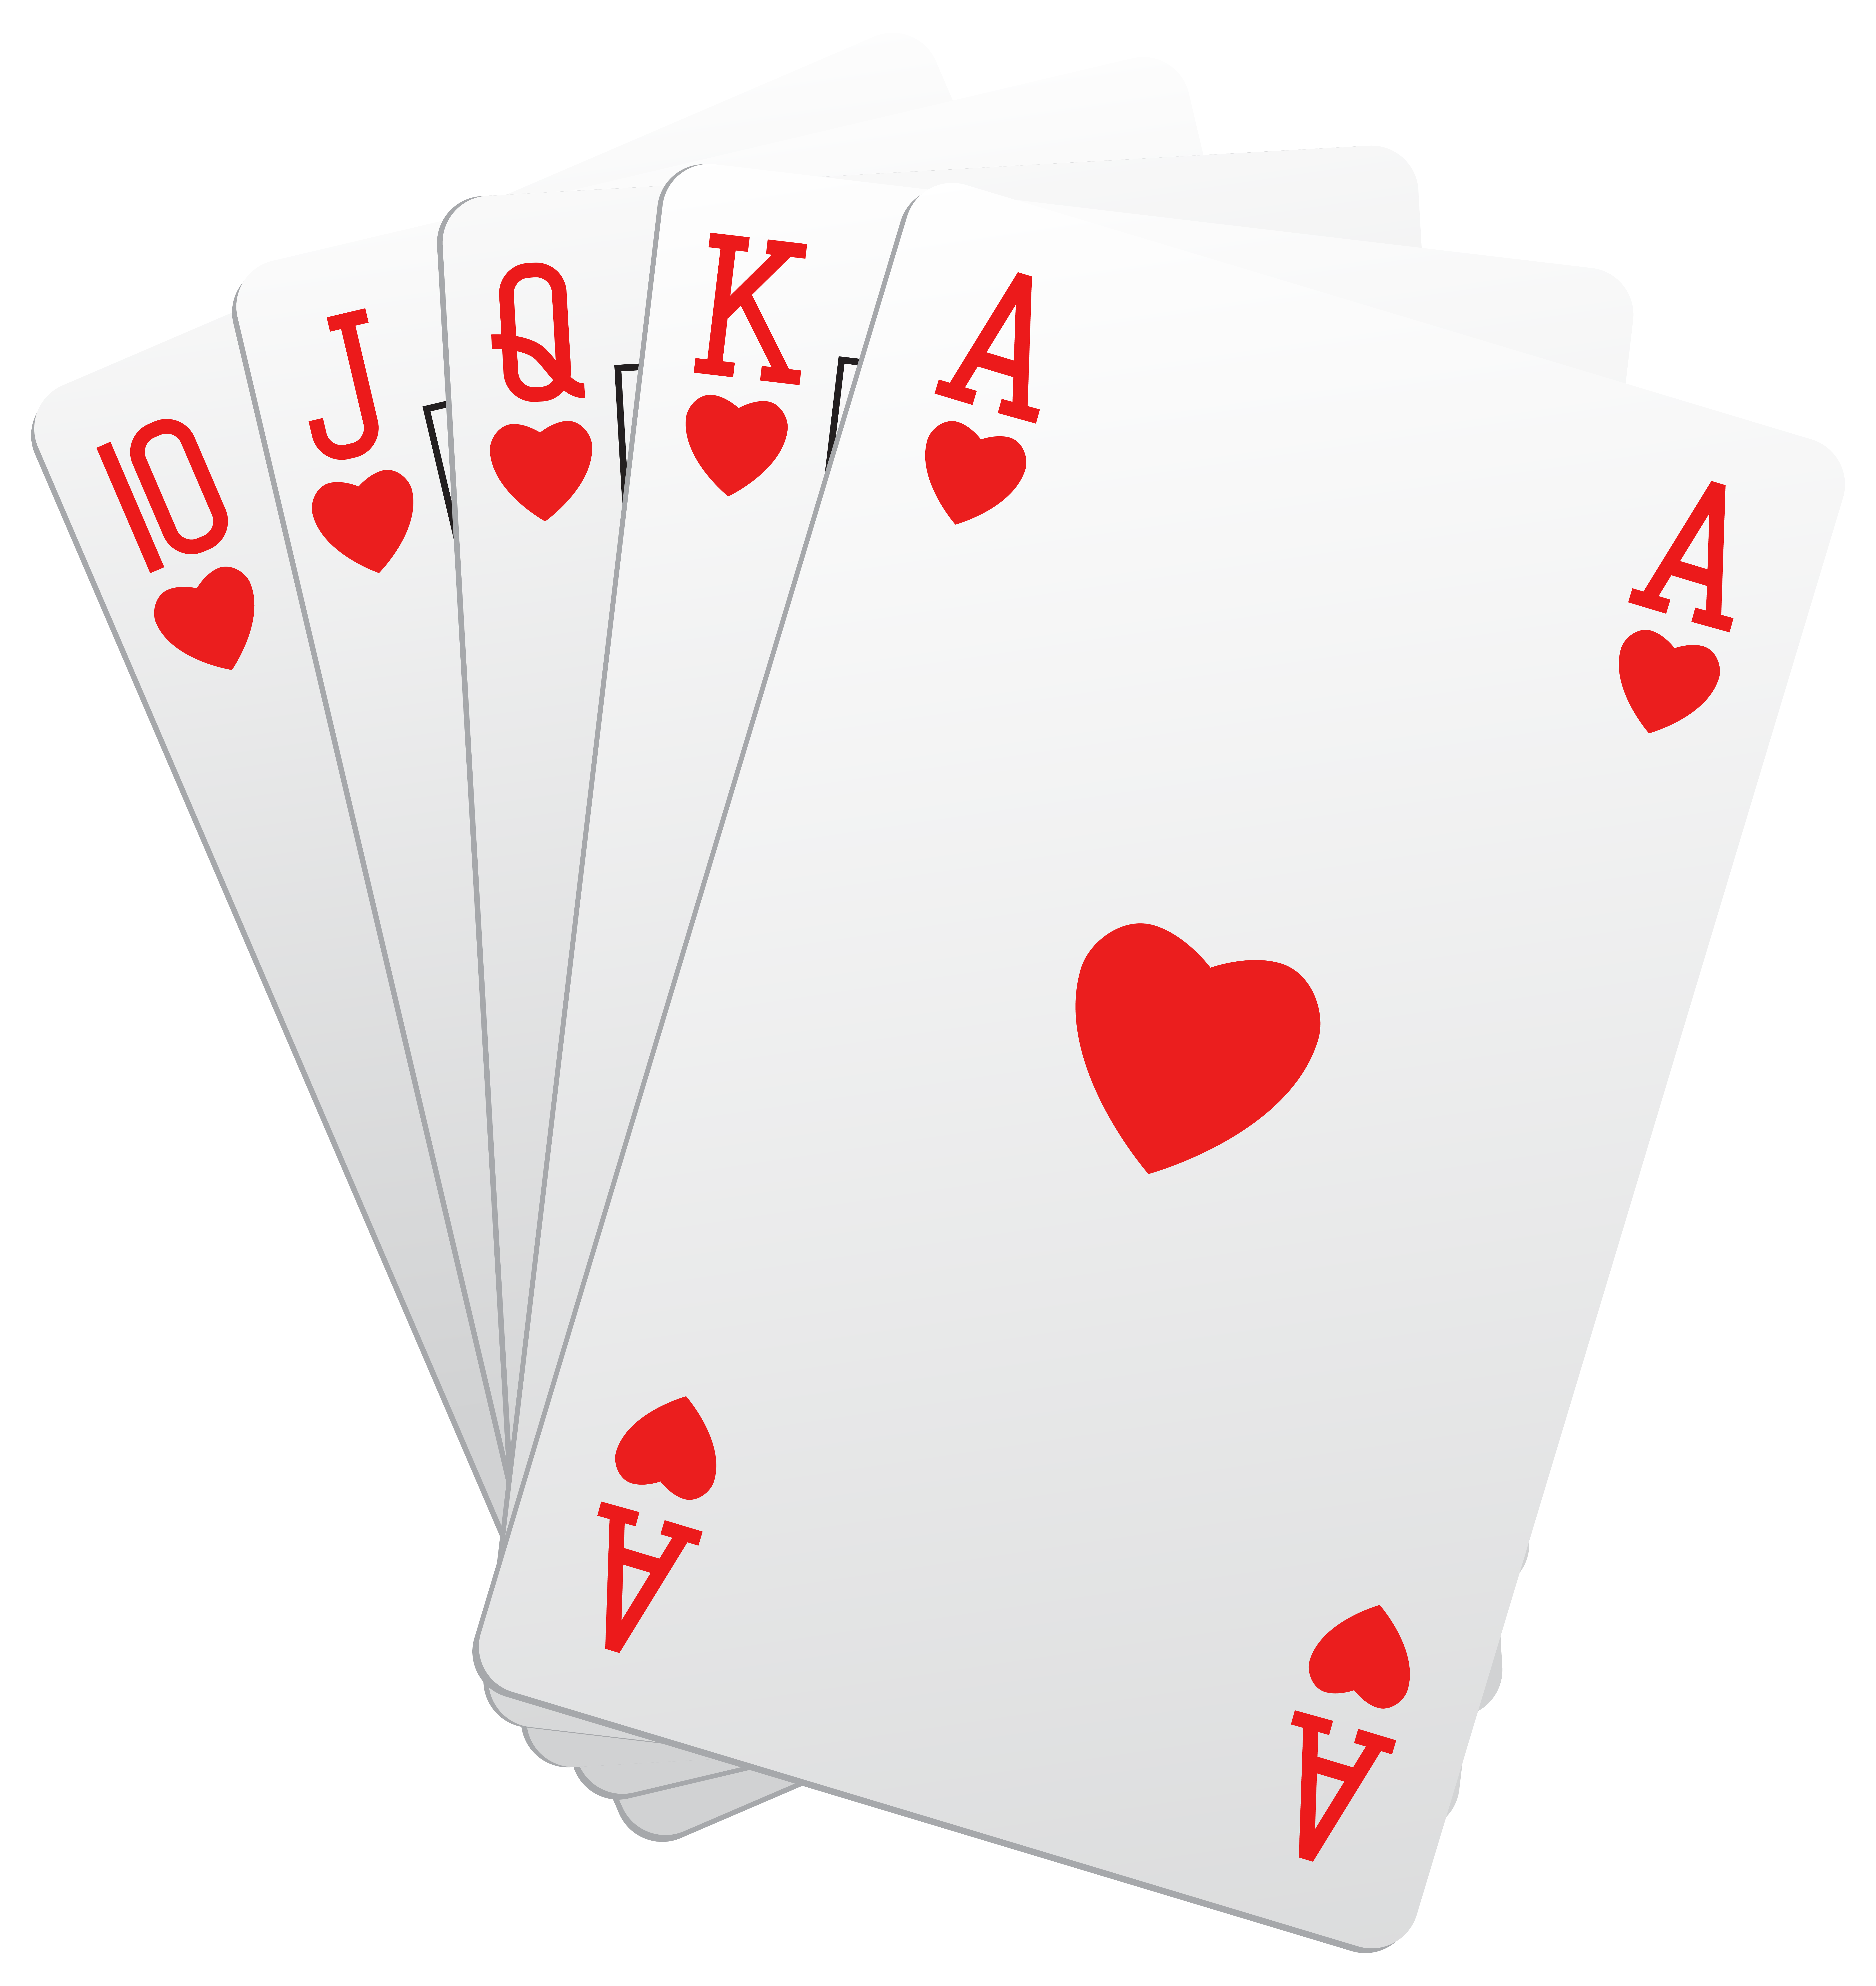 Heart card clipart graphic freeuse download 28+ Collection of Playing Card Clipart Images | High quality, free ... graphic freeuse download